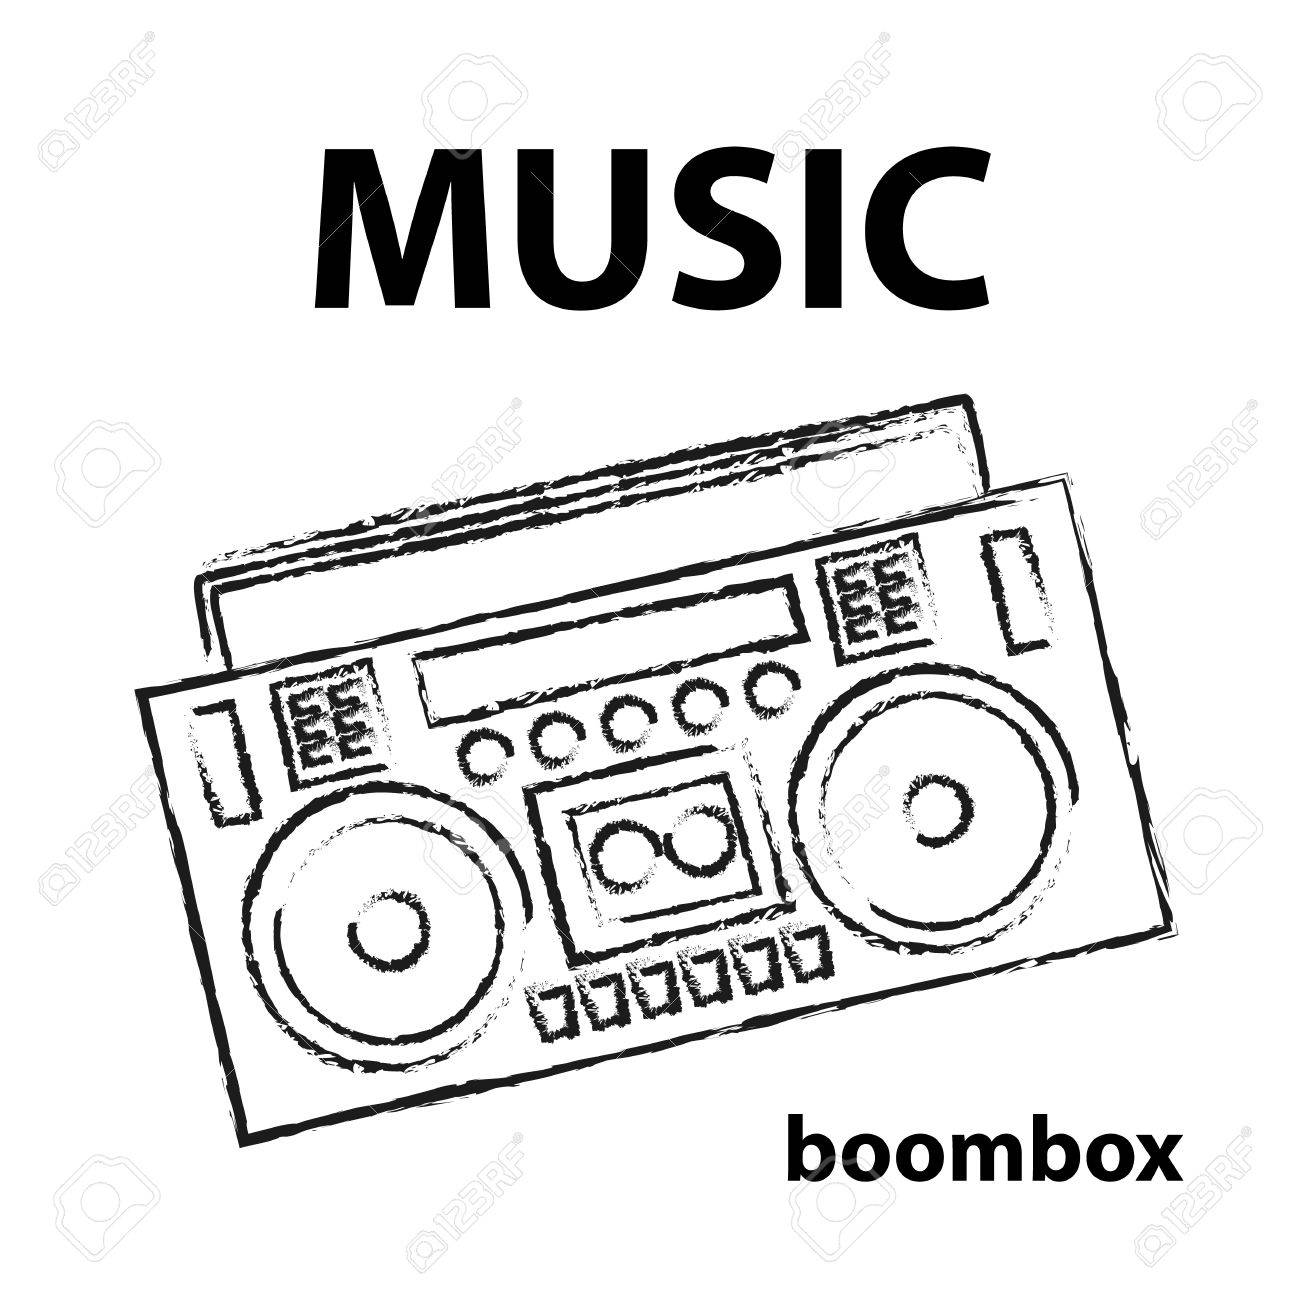 1300x1300 Boombox Vector Drawing Illustration Retro Sketch Art Royalty Free